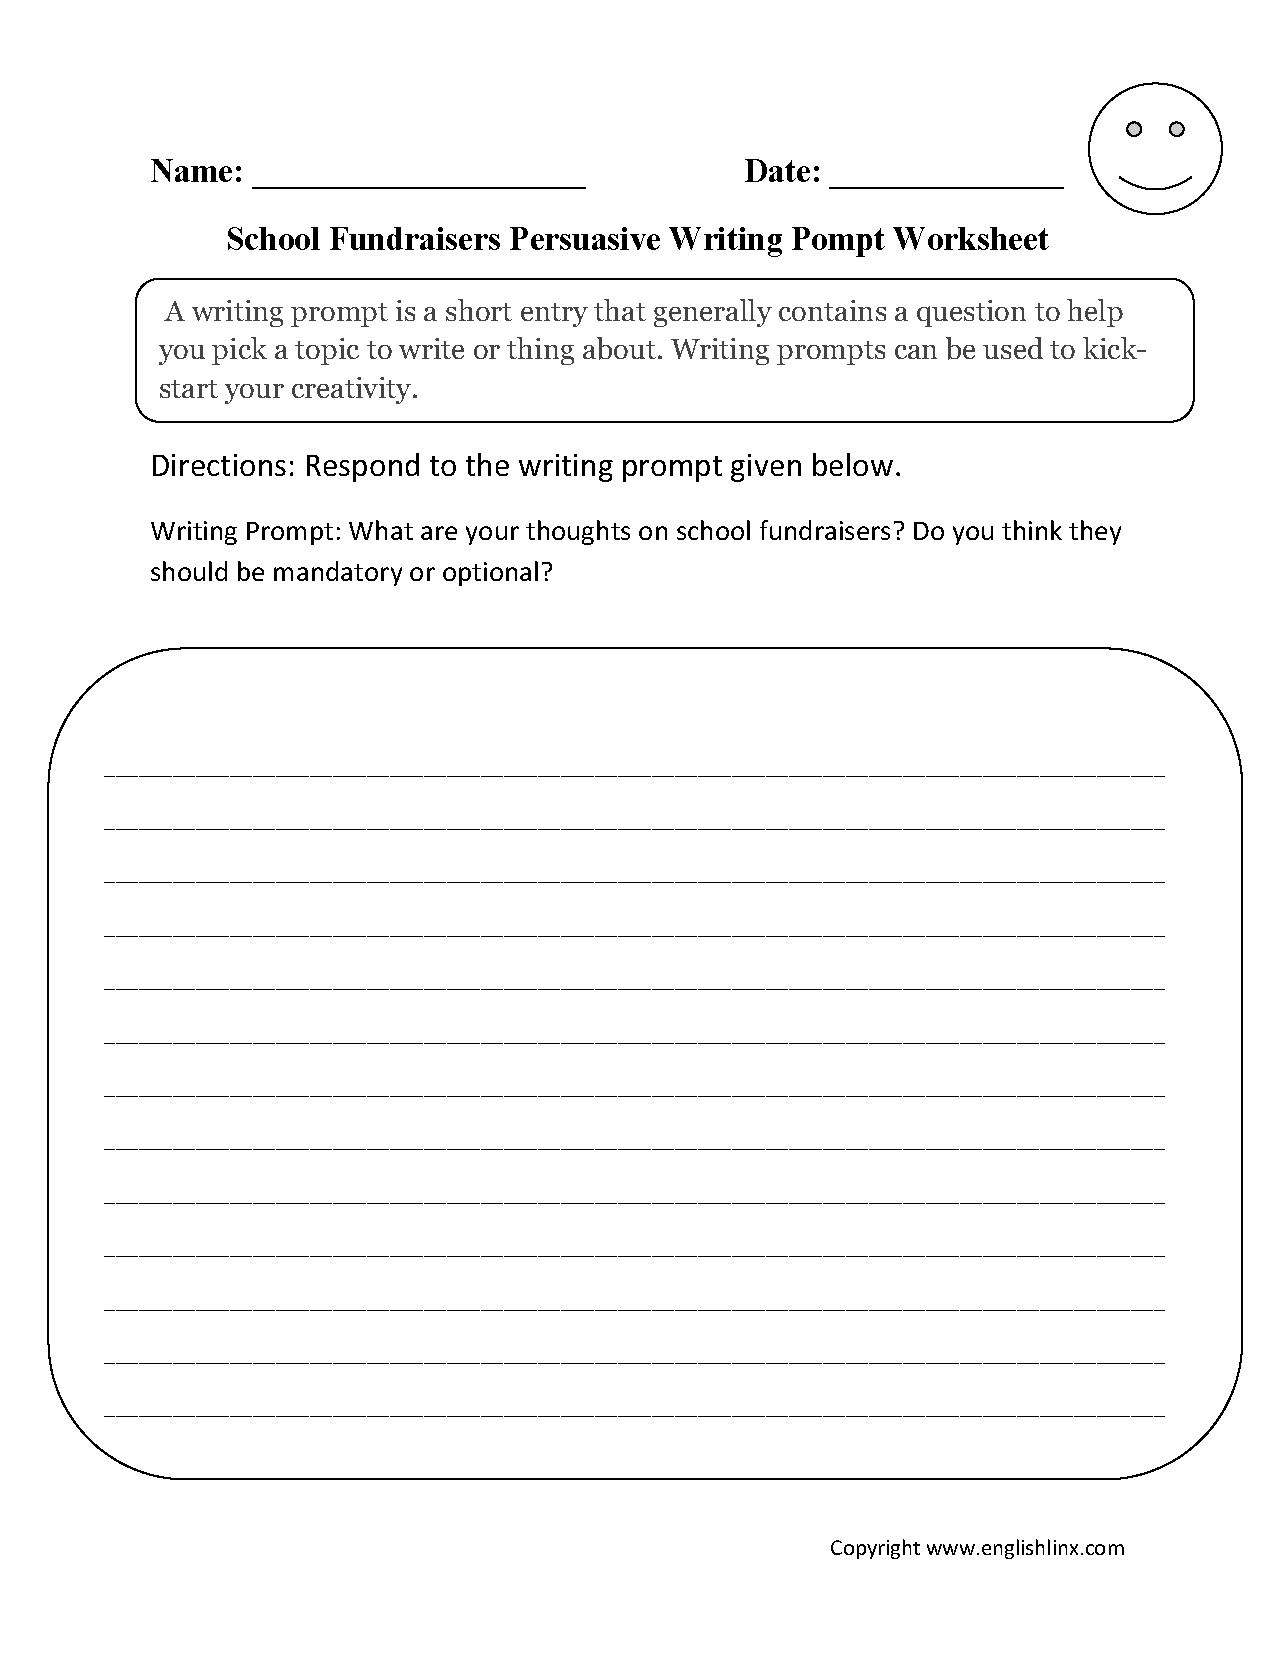 Writing Prompts Worksheets  Persuasive Writing Prompts Worksheets Along With 7Th Grade Writing Worksheets